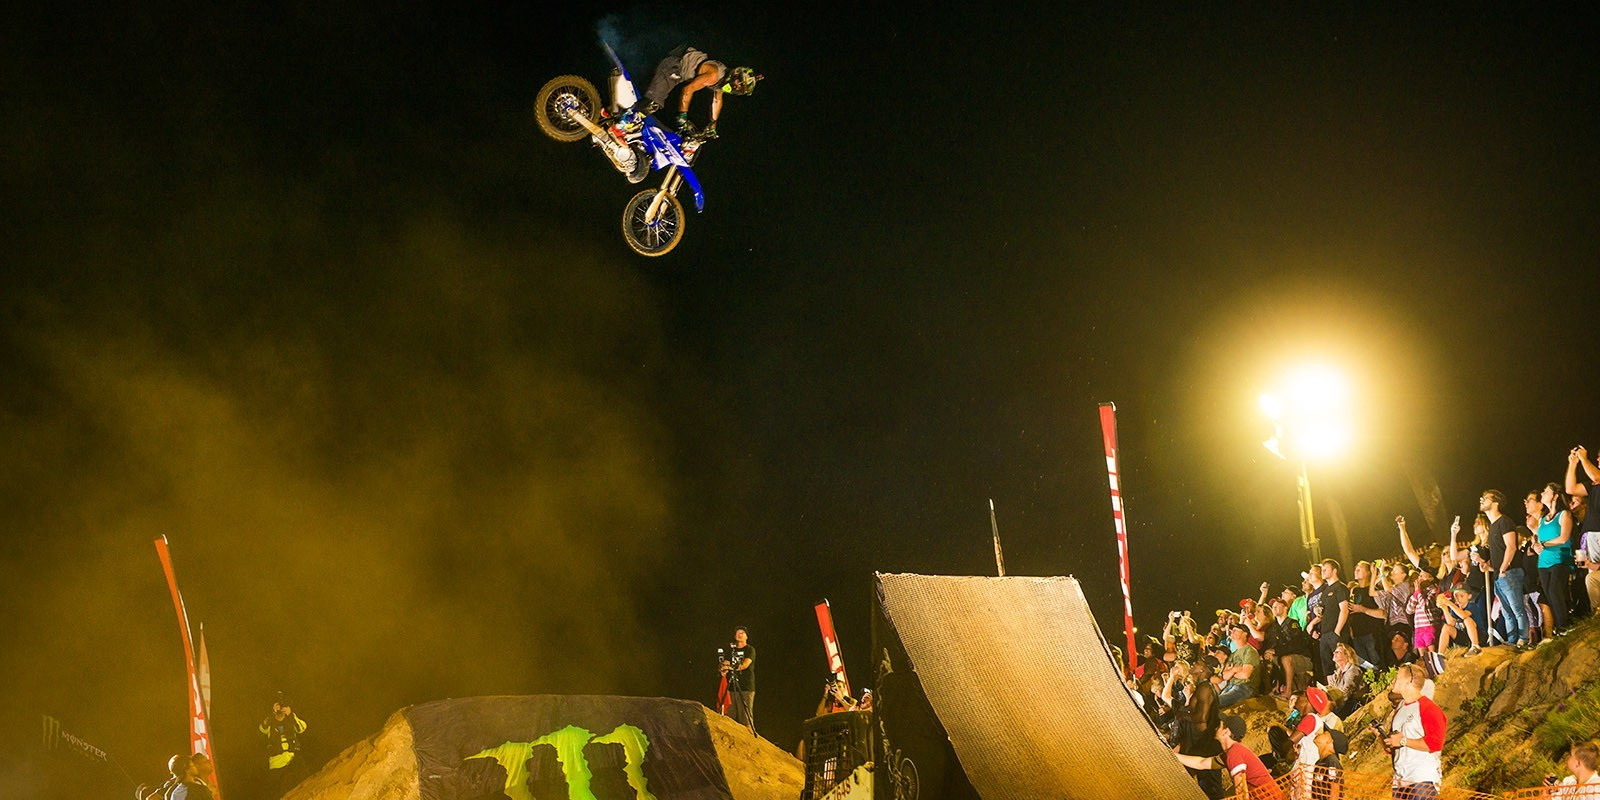 LW Mag King of the Whip - Johannesburg